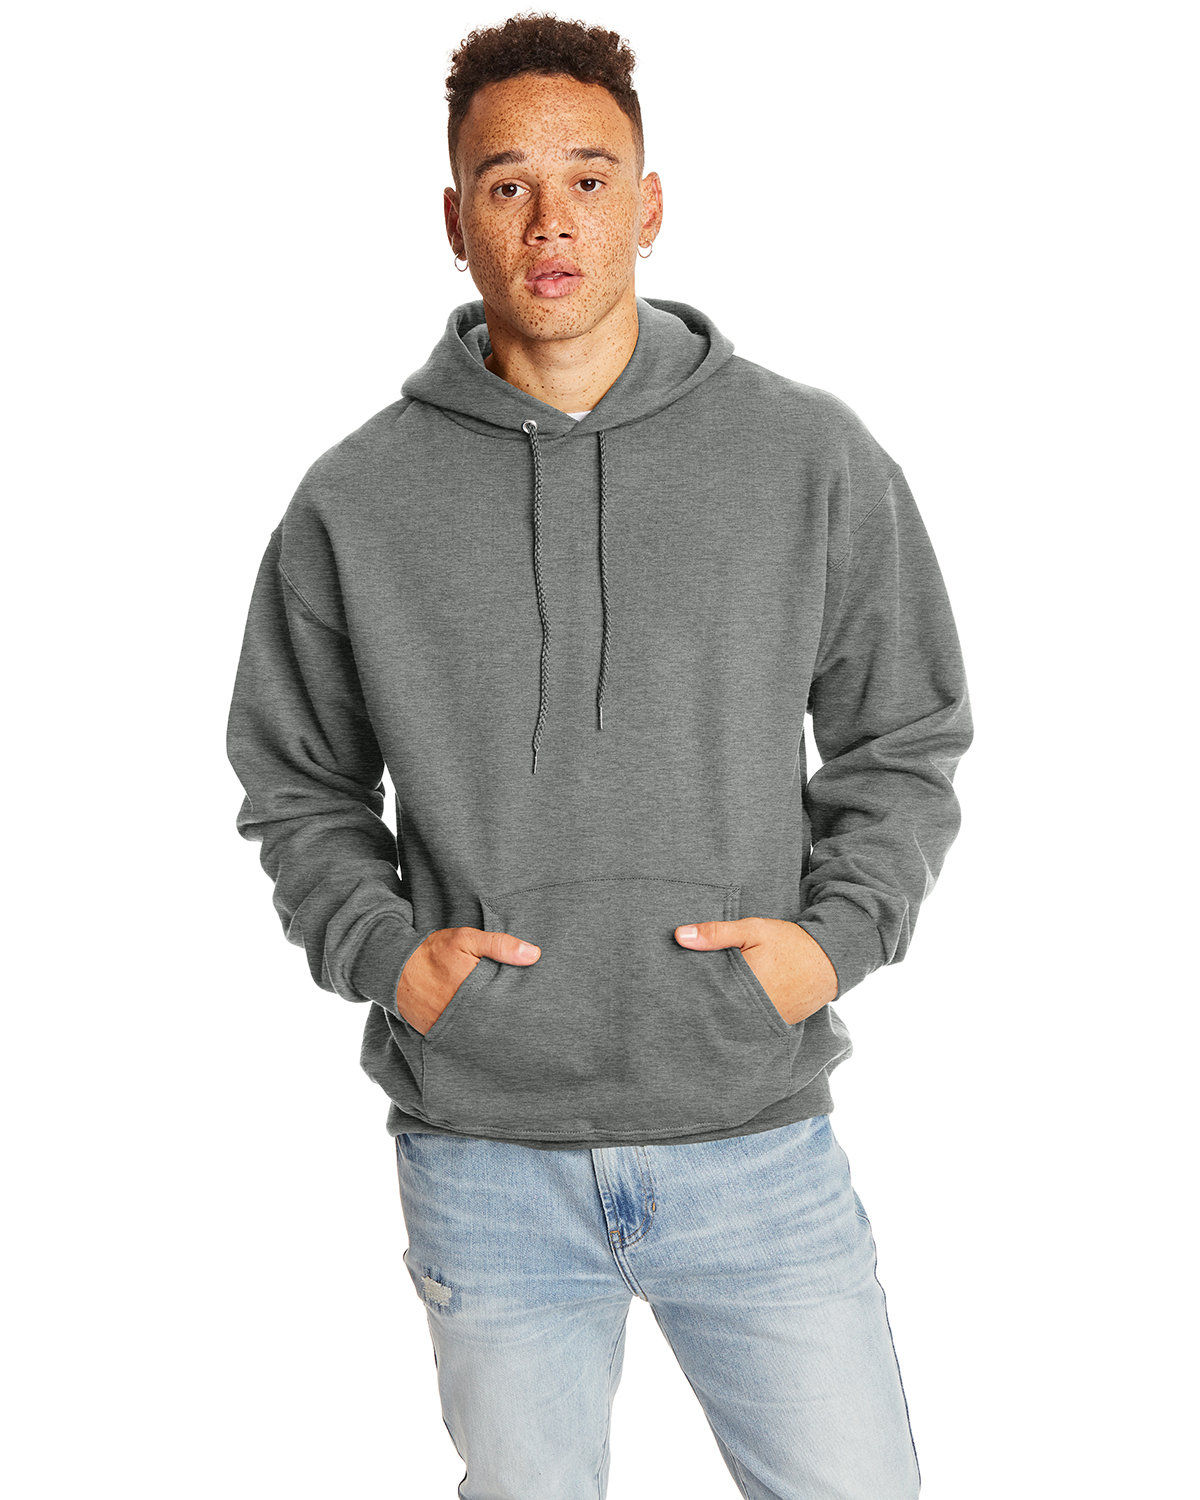 Hanes Adult Ultimate Cotton® 90/10 Pullover Hooded Sweatshirt CHARCOAL HEATHER